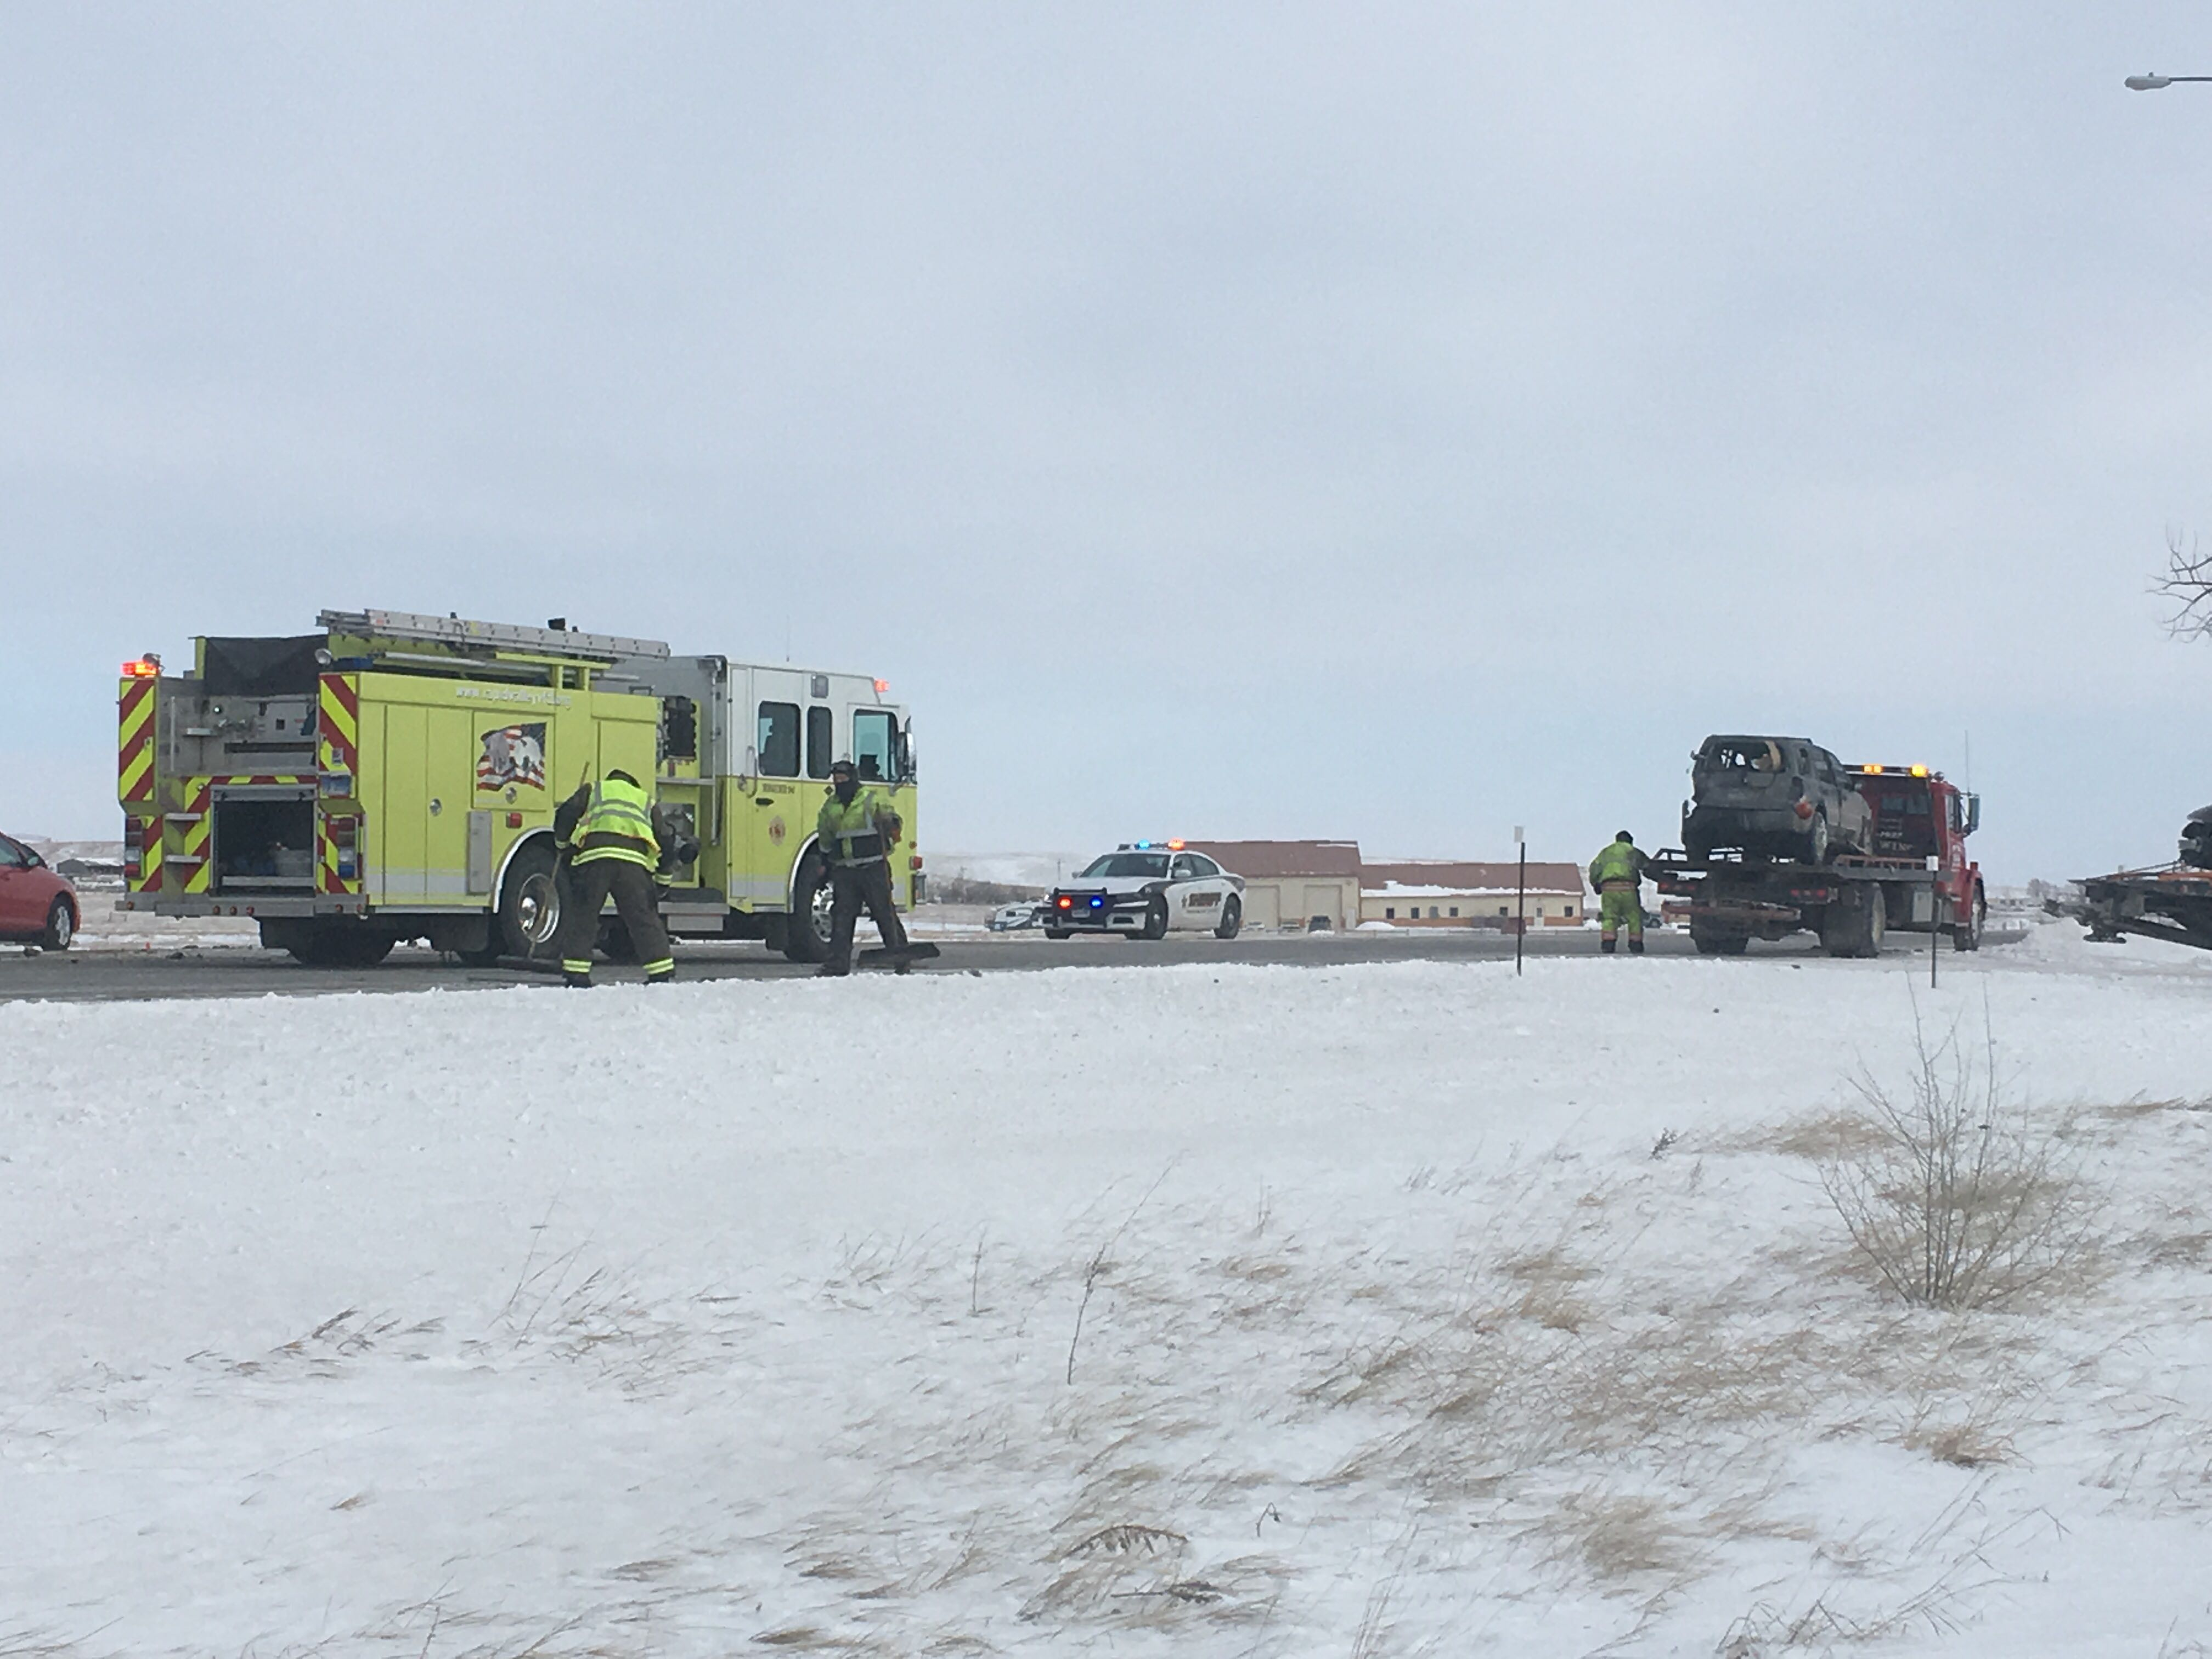 Seven people injured in four-car accident on Highway 44